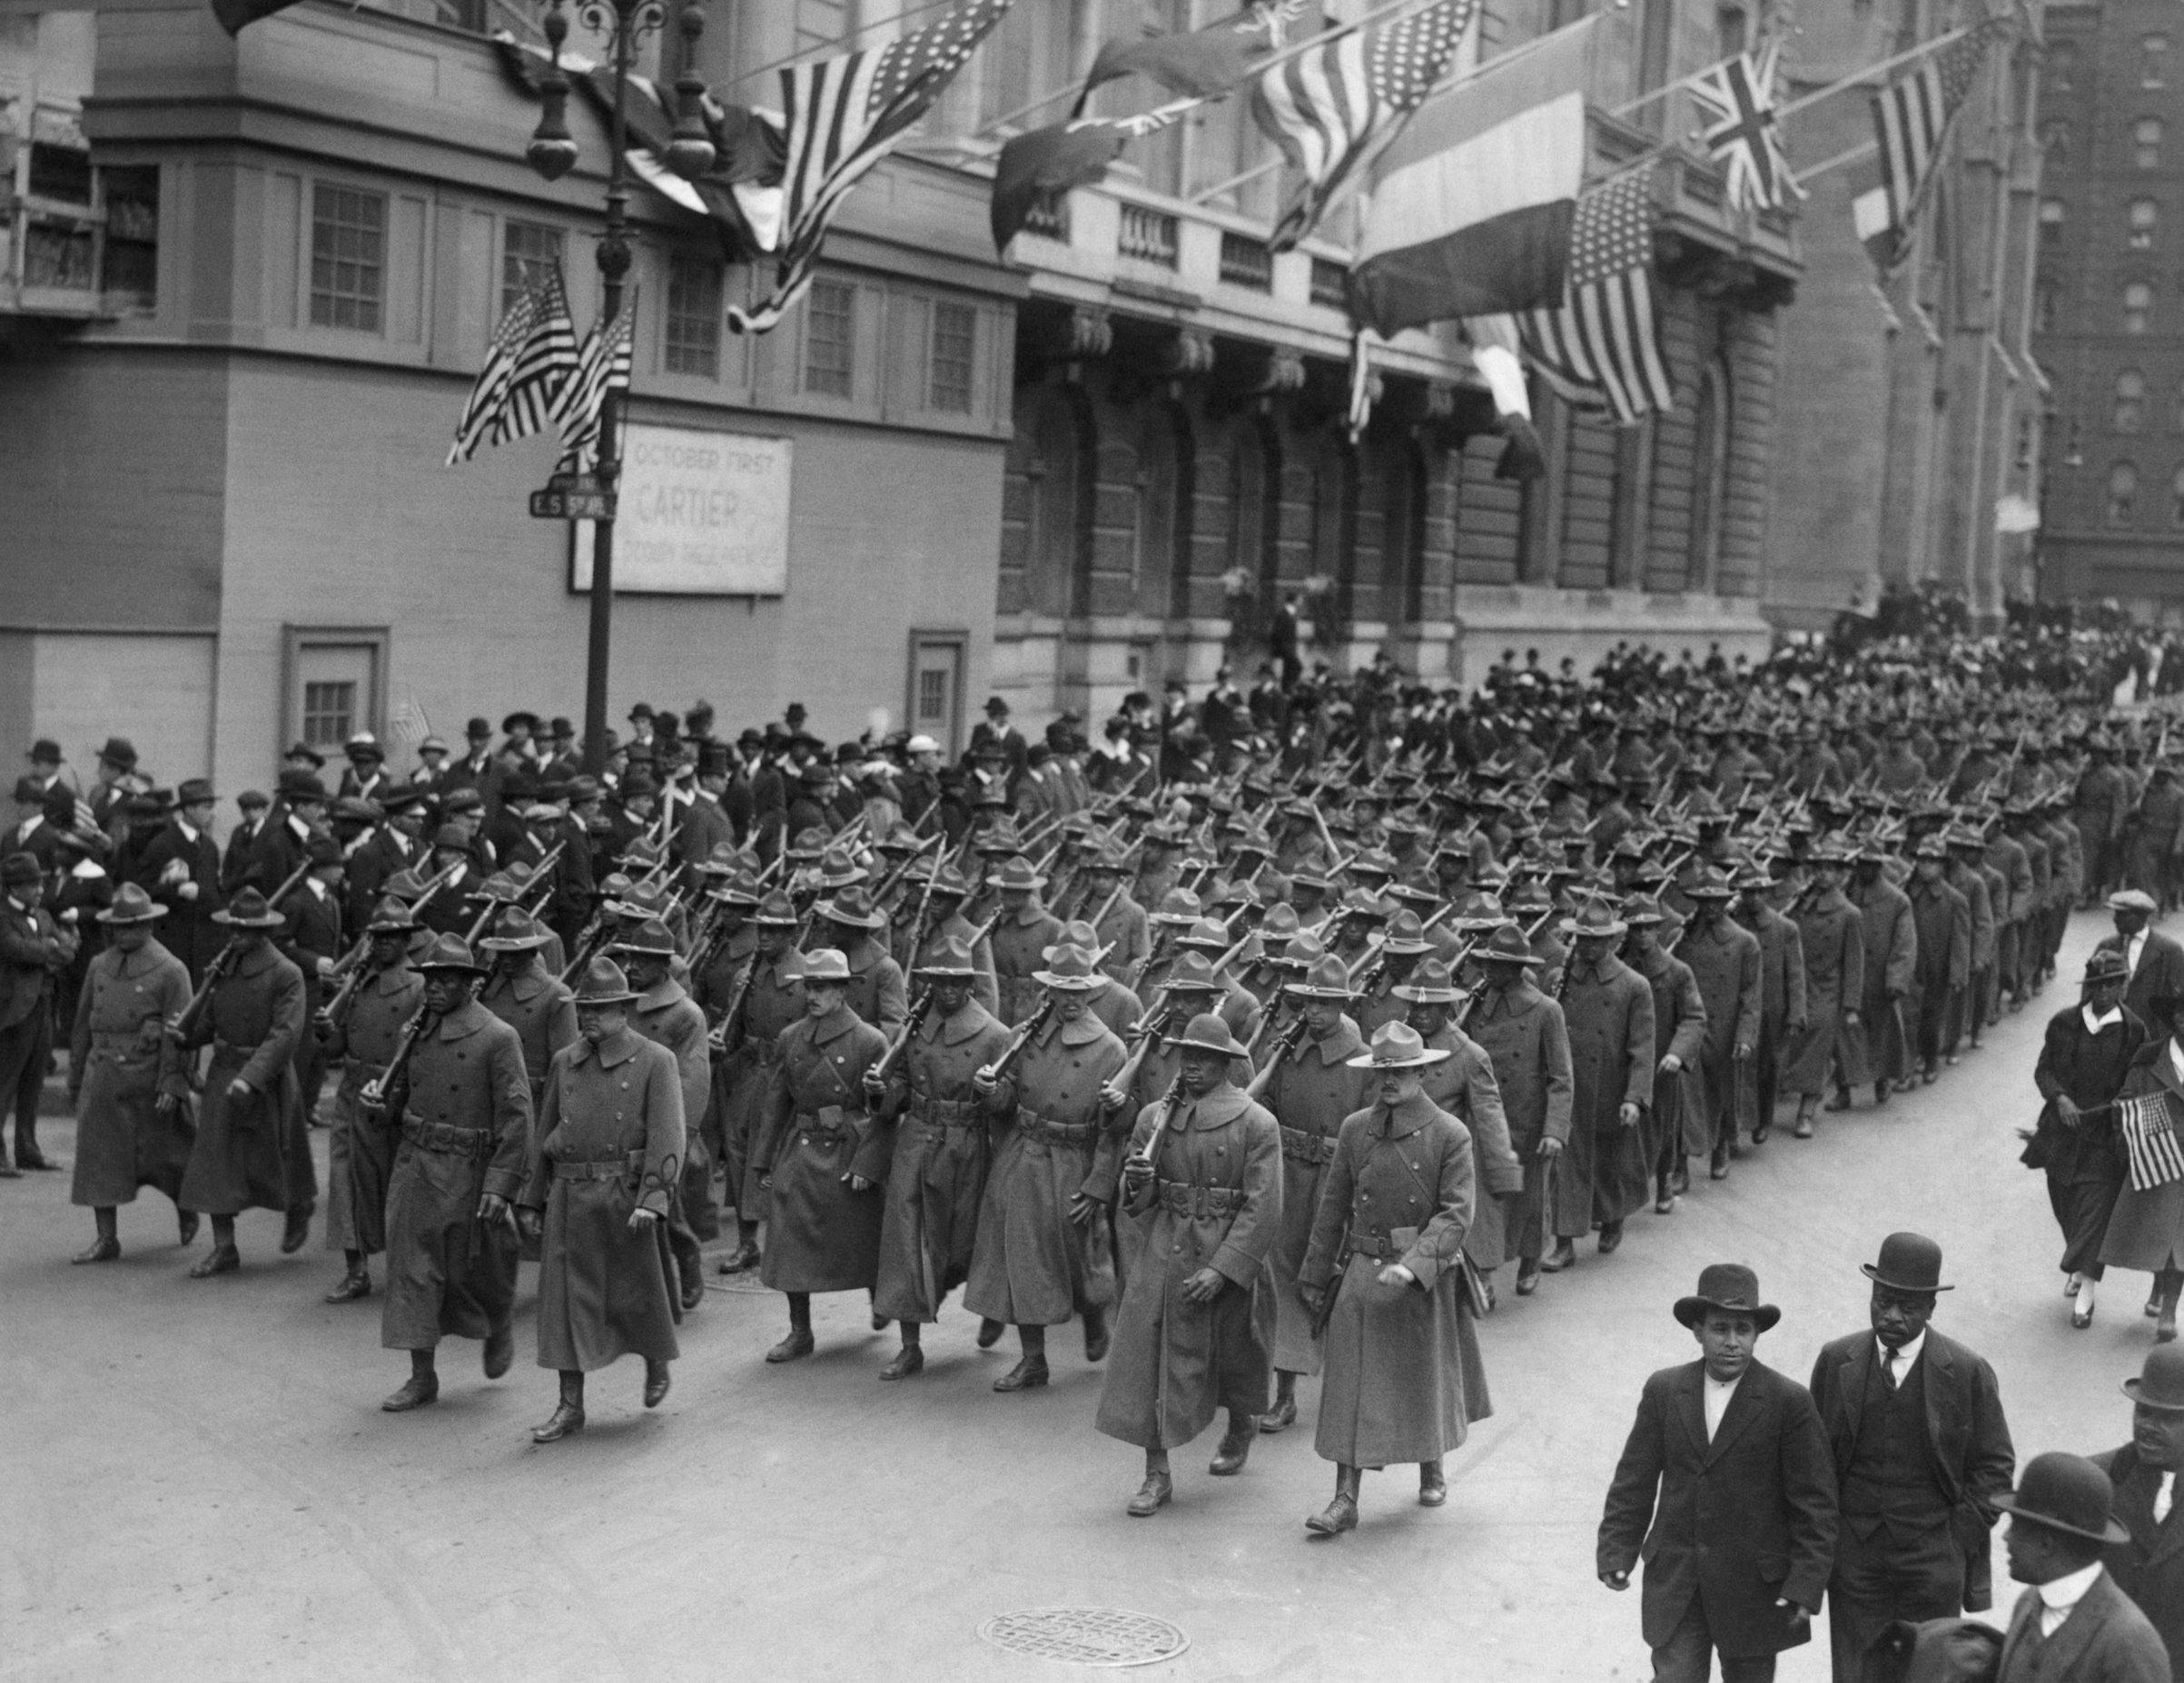 The all black 15th regiment parading up Fifth Avenue, New York City, en route to an Army camp in New York State in 1916.